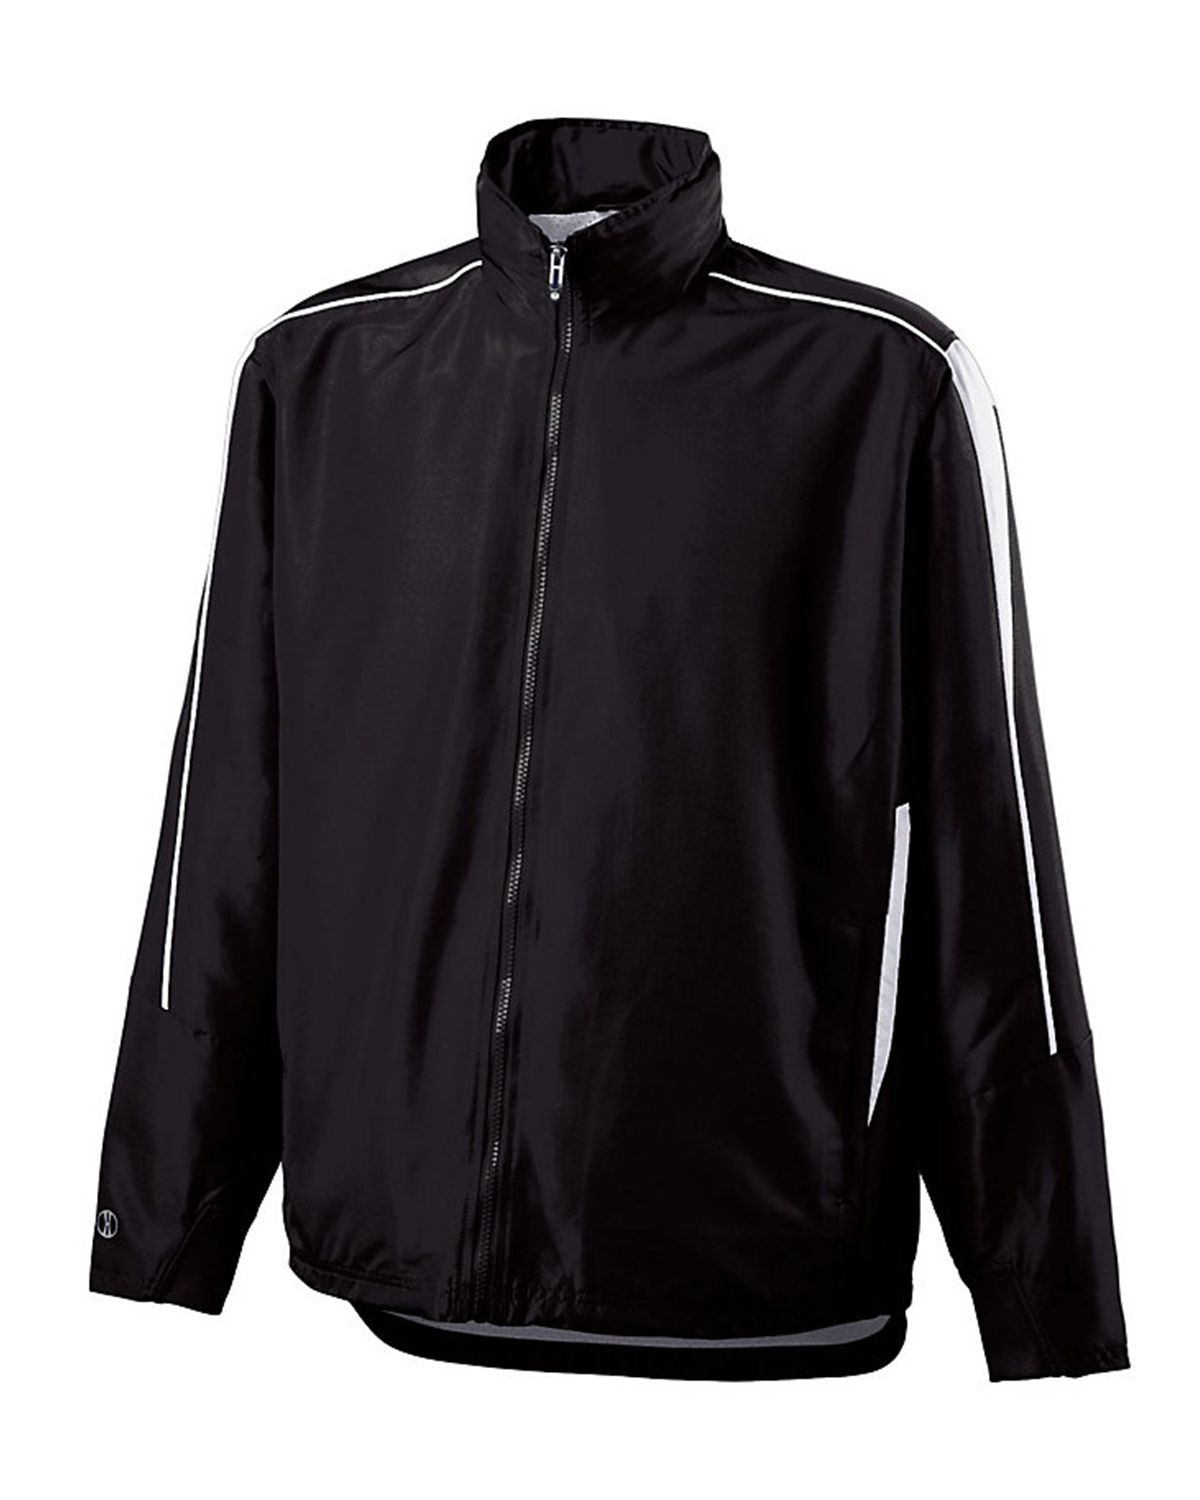 Holloway 229062 Aggression Jacket - Black/ White - M 229062